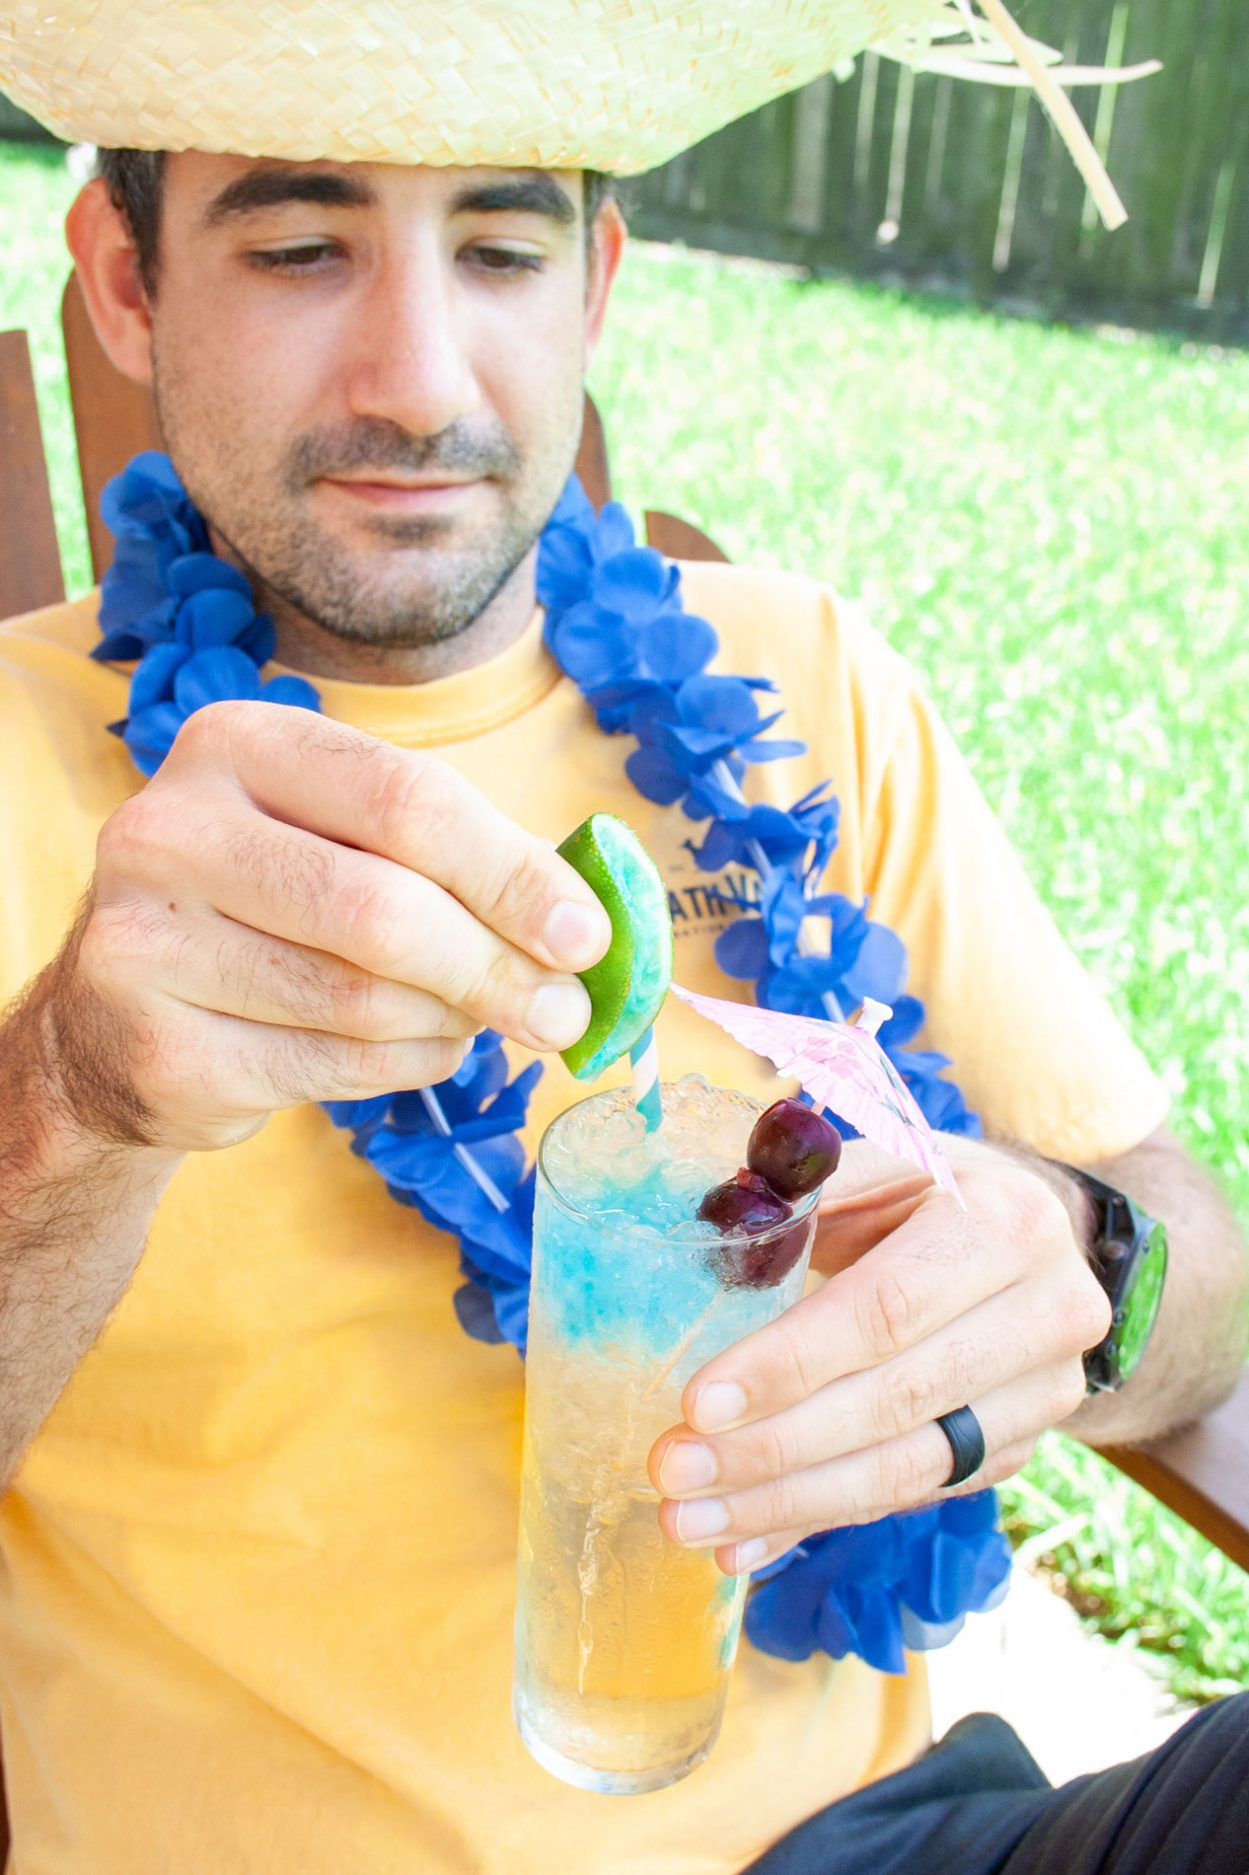 Master your next luau party with these fun rum tiki cocktails, Pink Hawaiian and the Pool Boy. The Pink Hawaiian is a pink cocktail with Master of Mixes Strawberry Colada Mix and white rum. The Pool Boy is a dark rum and absinthe cocktail mixed with Master of Mixes White Sangria! Elle Talk| #ad #MasterofMixes #MasterYourSummer #cocktail #cocktailrecipe #summer #luau #luauparty #tiki #tikicocktail #rum